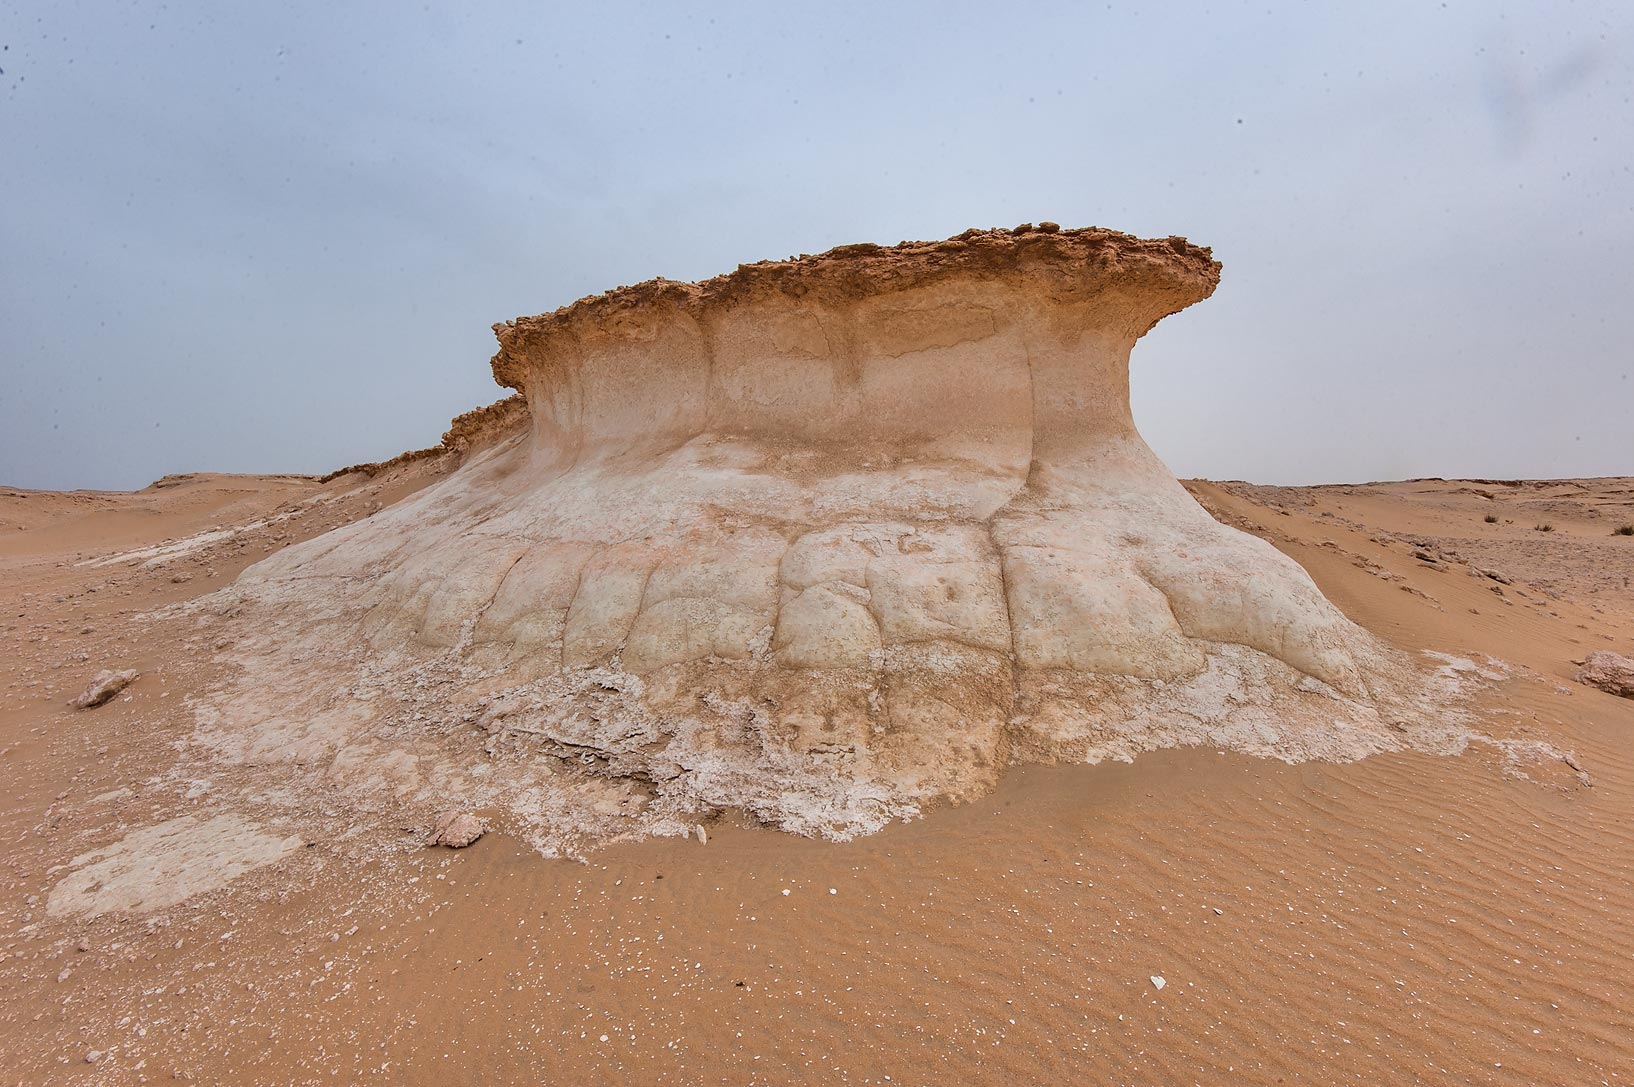 Mushroom shaped cliff in area of Nakhsh Mountain near Salwa Rd. in southern Qatar